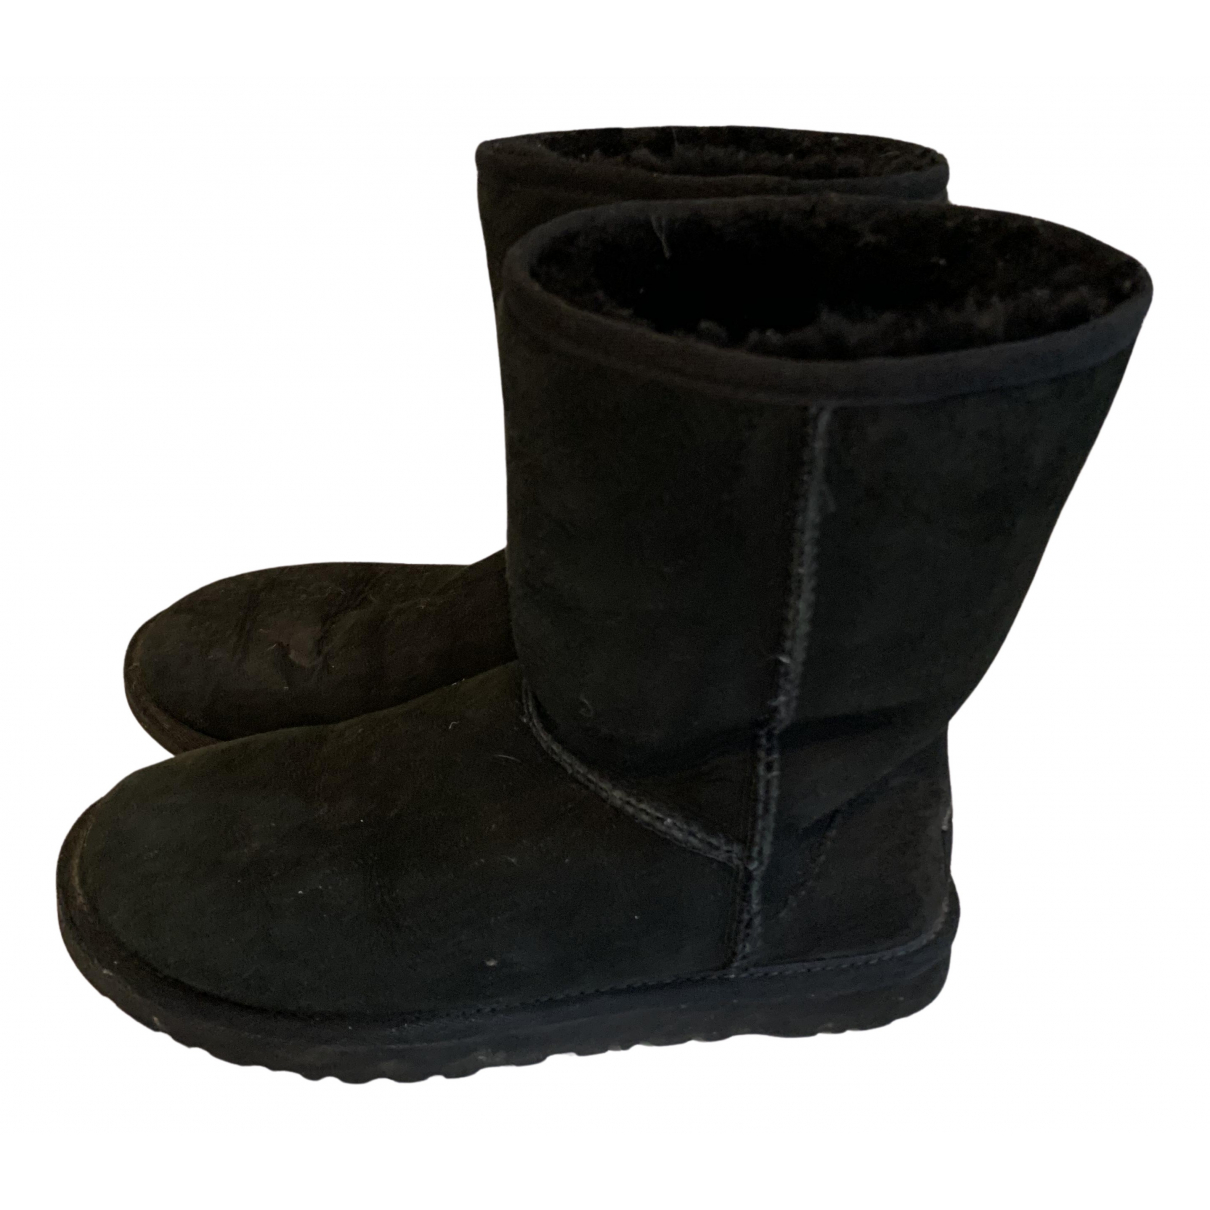 Ugg N Black Suede Boots for Women 37 EU